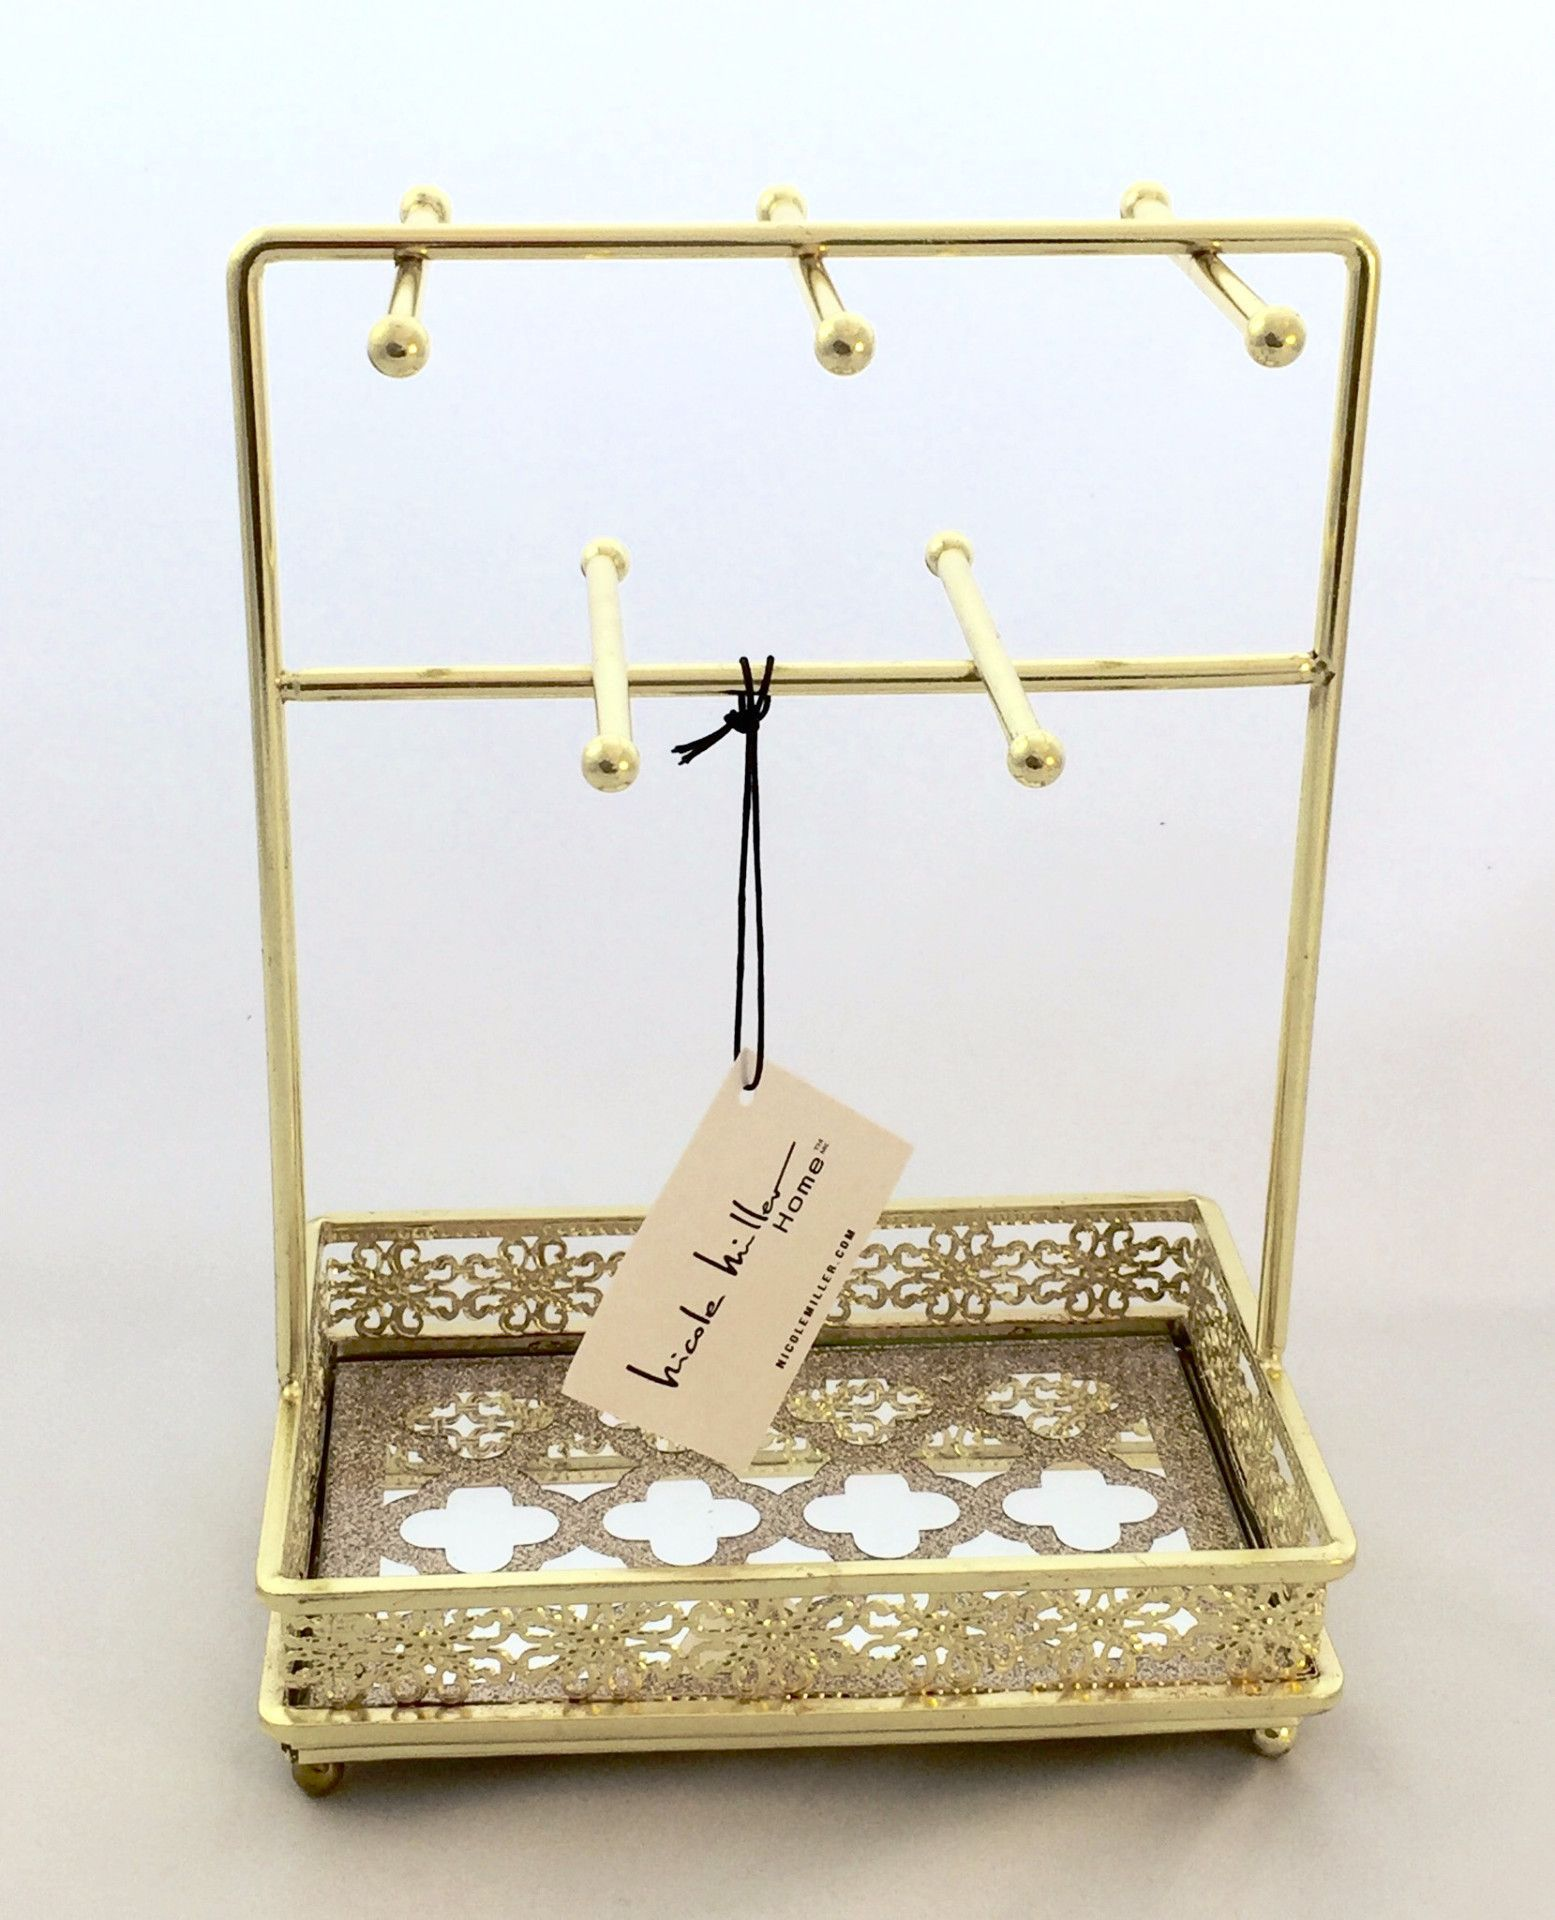 This Gold Metal Framed Jewelry Stand Will Make Your Dresser Look Glamorous It Also Makes A Wonderful Gift The Base Is Mirrored Glitter Quatrefoil